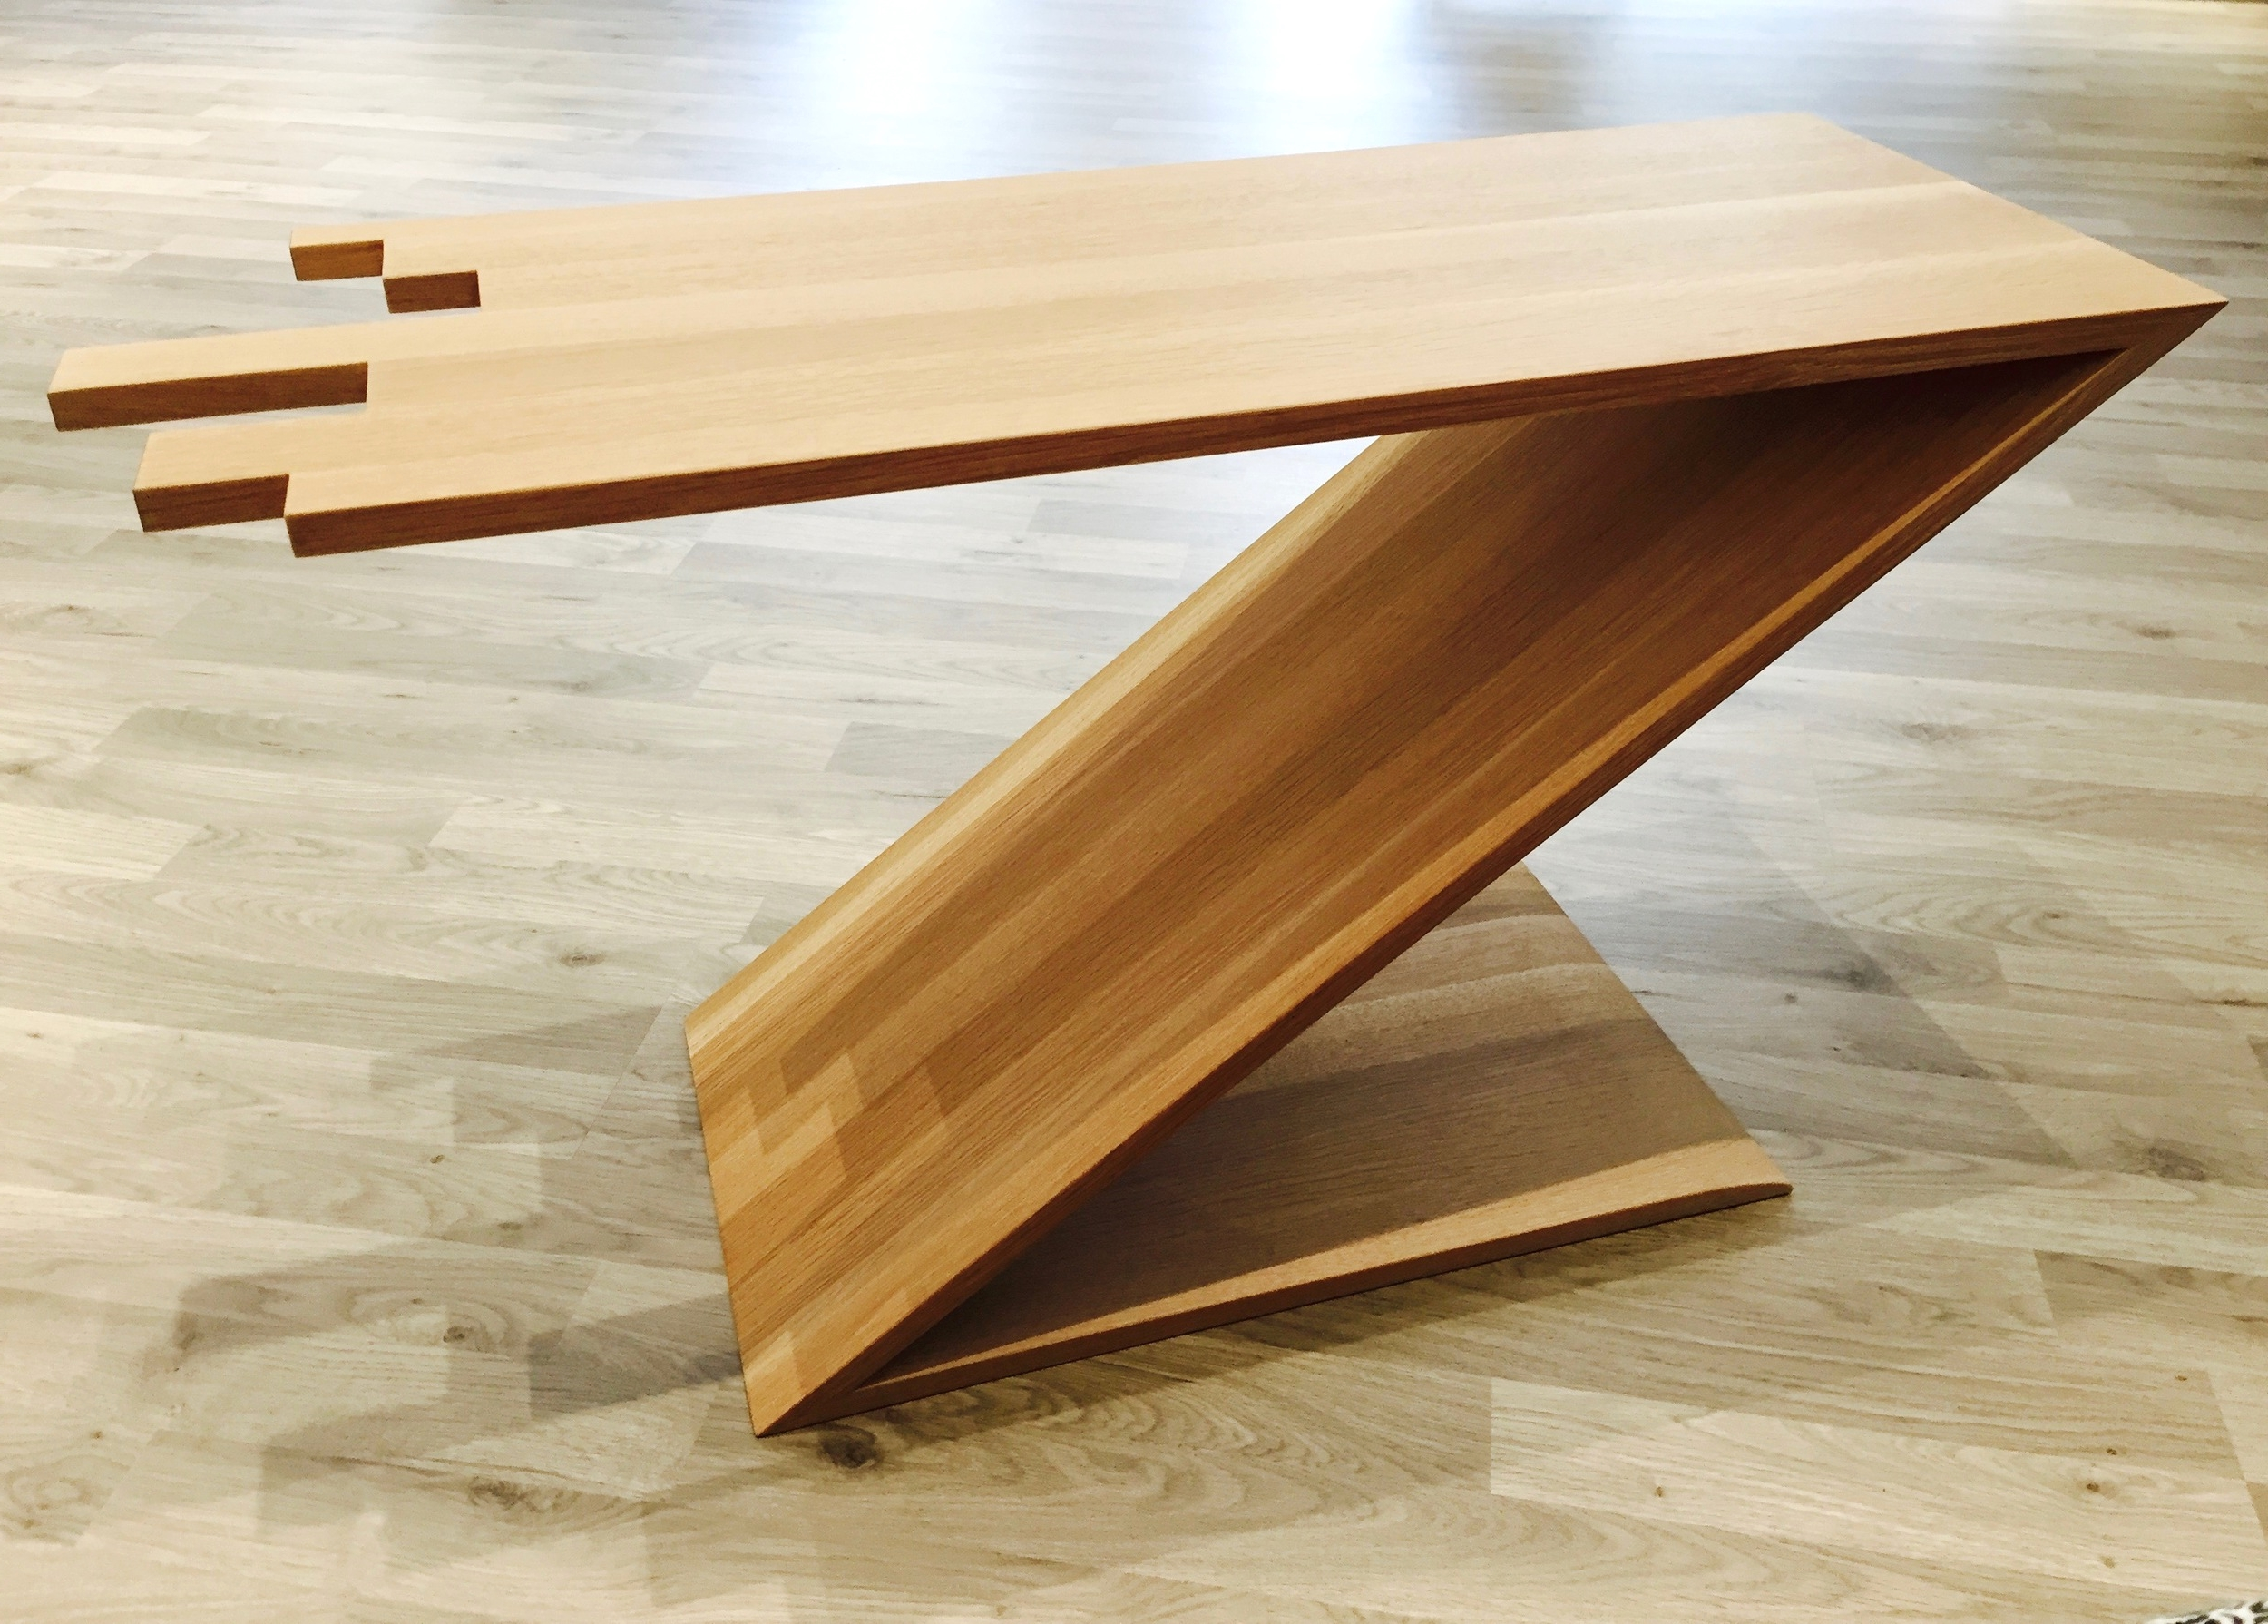 A longer table top with the shorter gently sloping base creates an illusion of uncertainty.